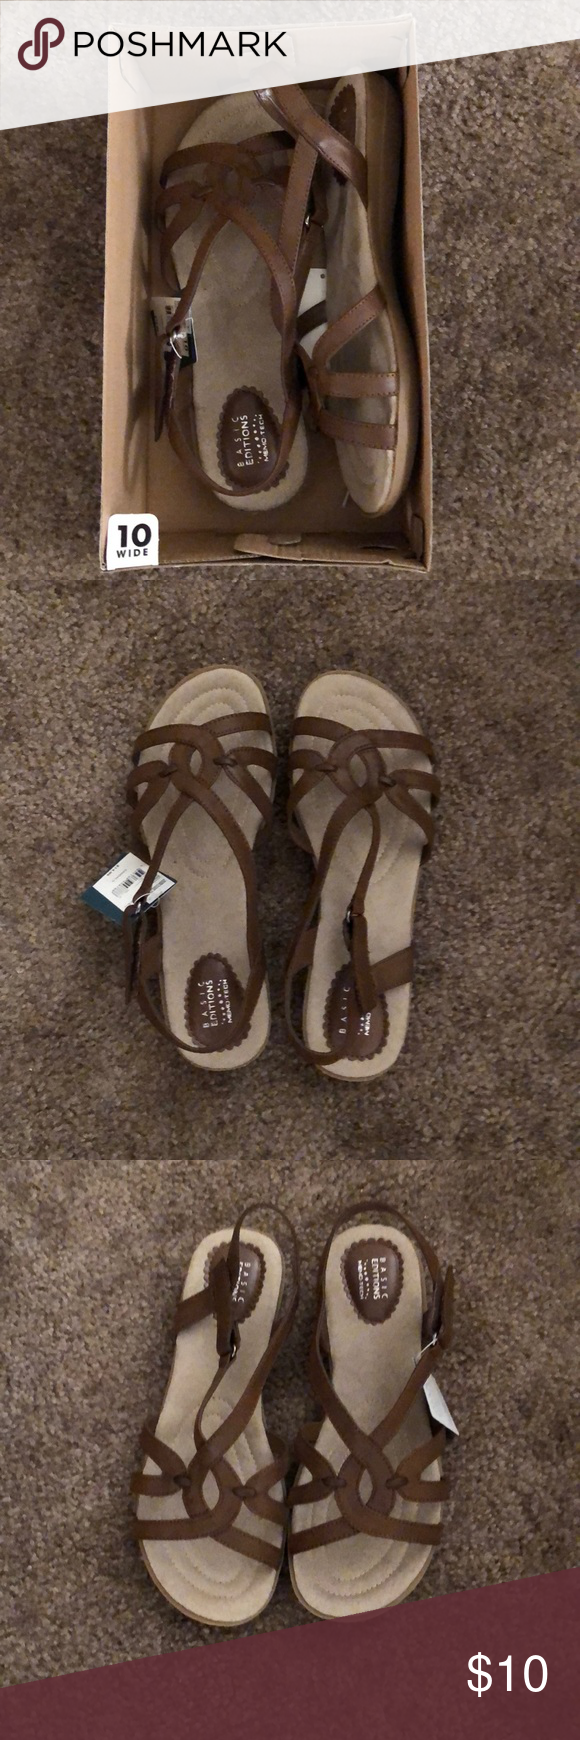 10 wide Basic Editions Shoes Sandals